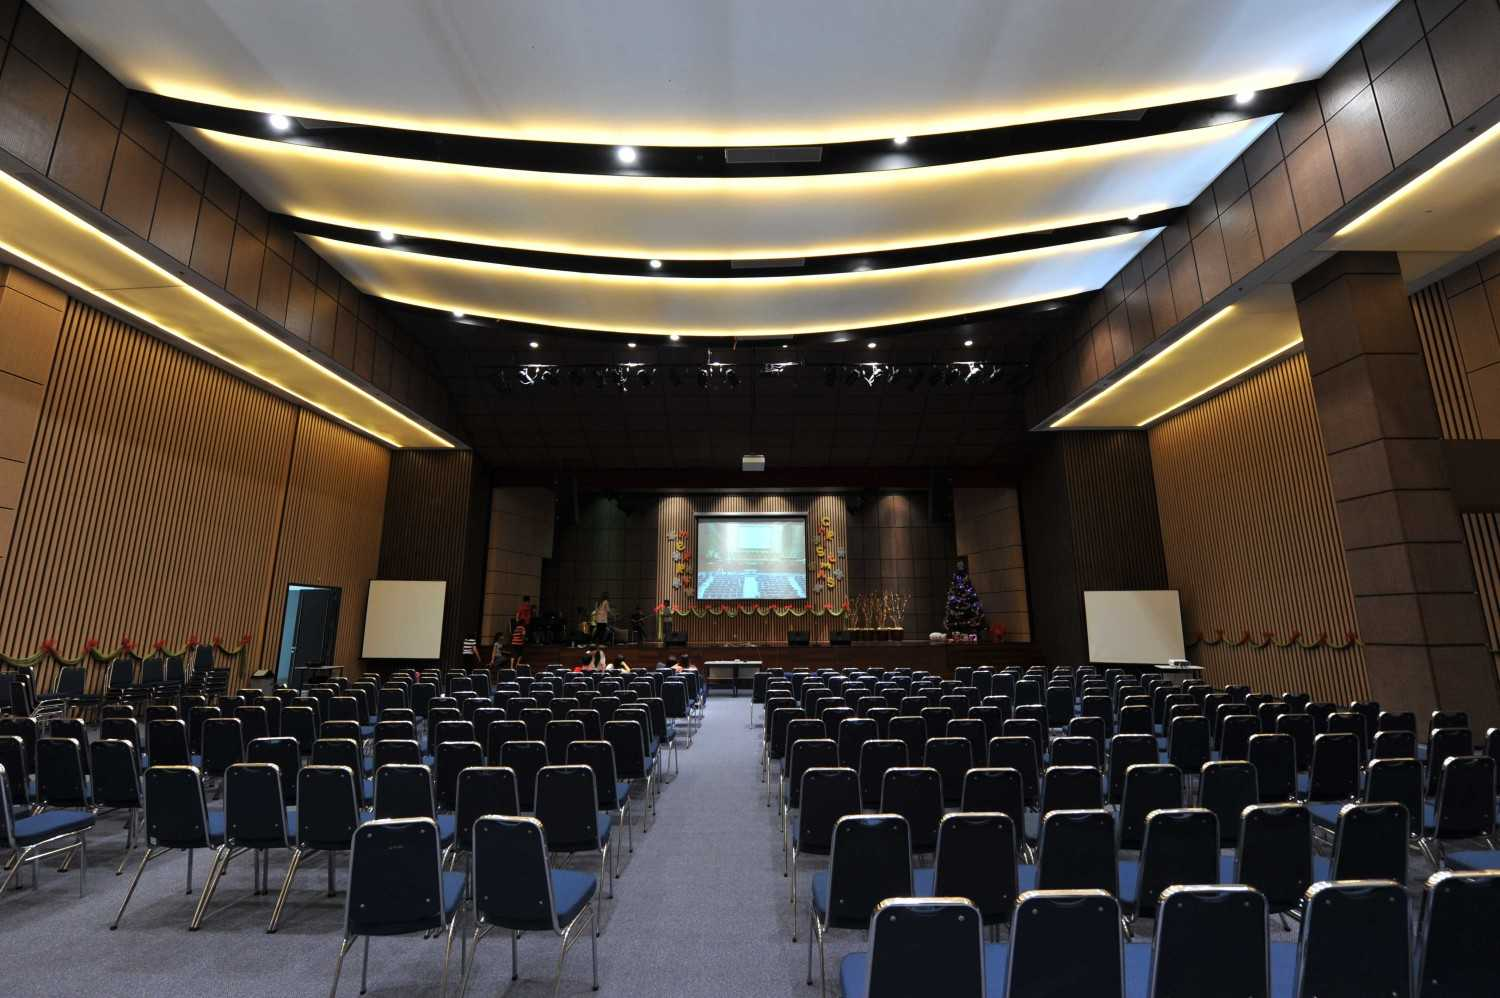 Aqustica Function Hall Bpk Penabur International Jakarta, Indones Jakarta, Indones Photo-29750 Modern 29753